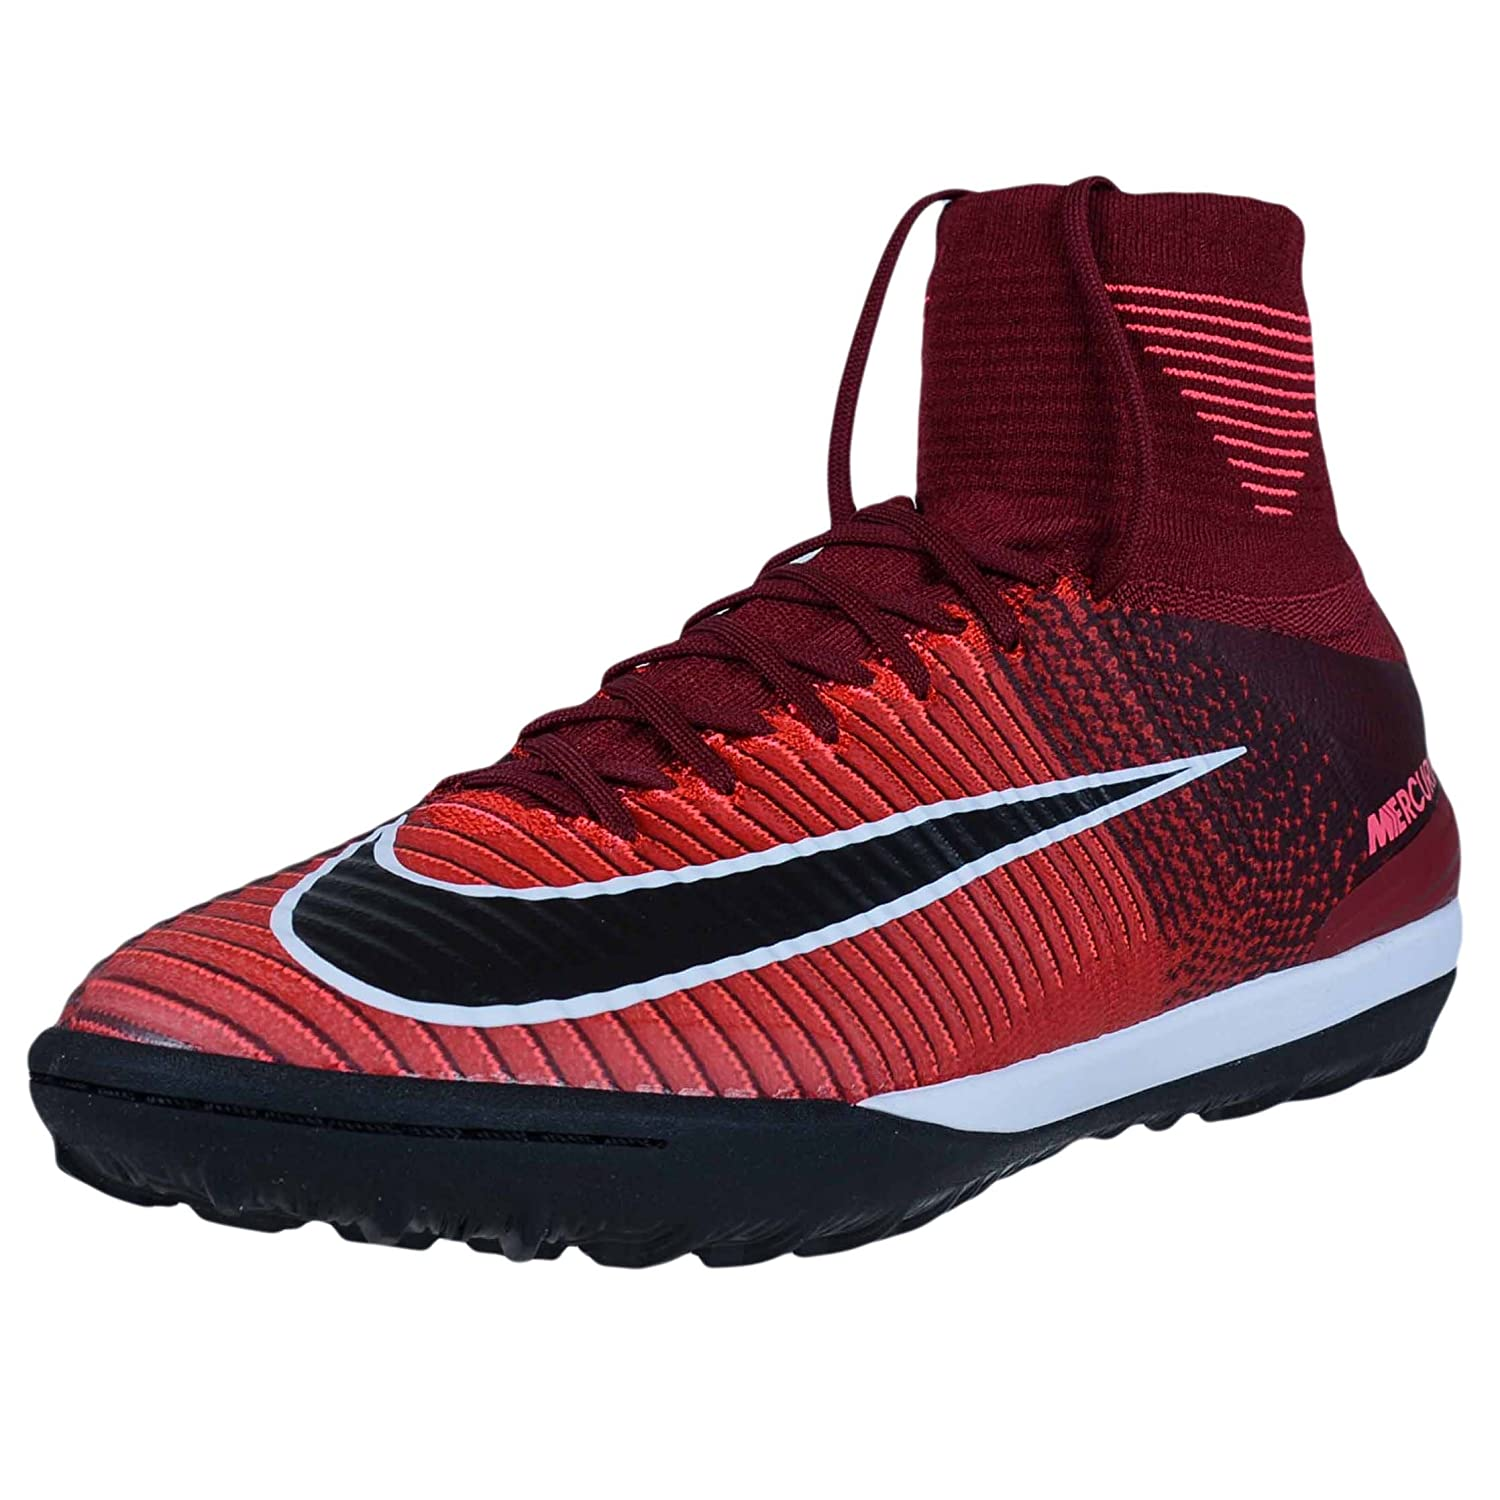 Nike 831977-606 Men's MercurialX Proximo II Dynamic Fit (TF)